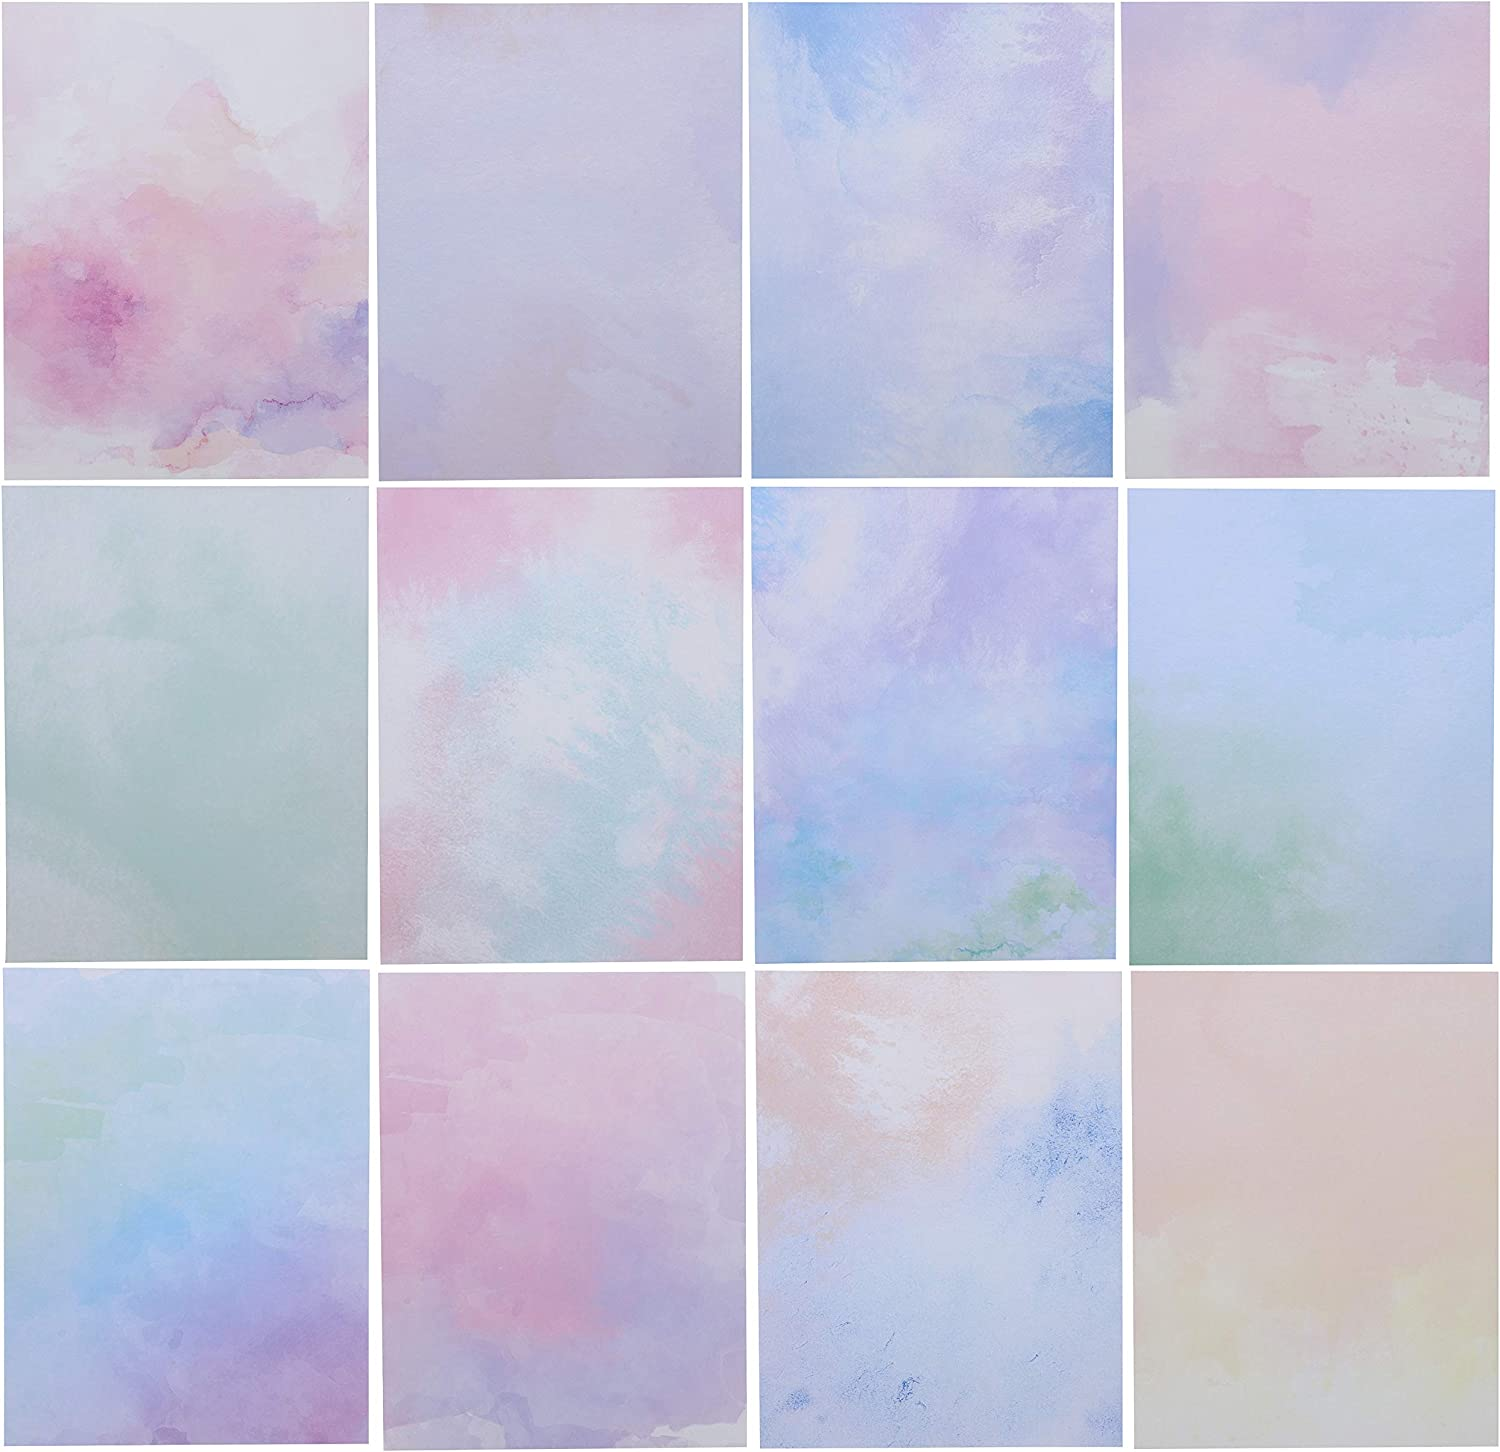 Watercolor Stationery Paper (8.5 x 11 Inches, 96 Sheets)